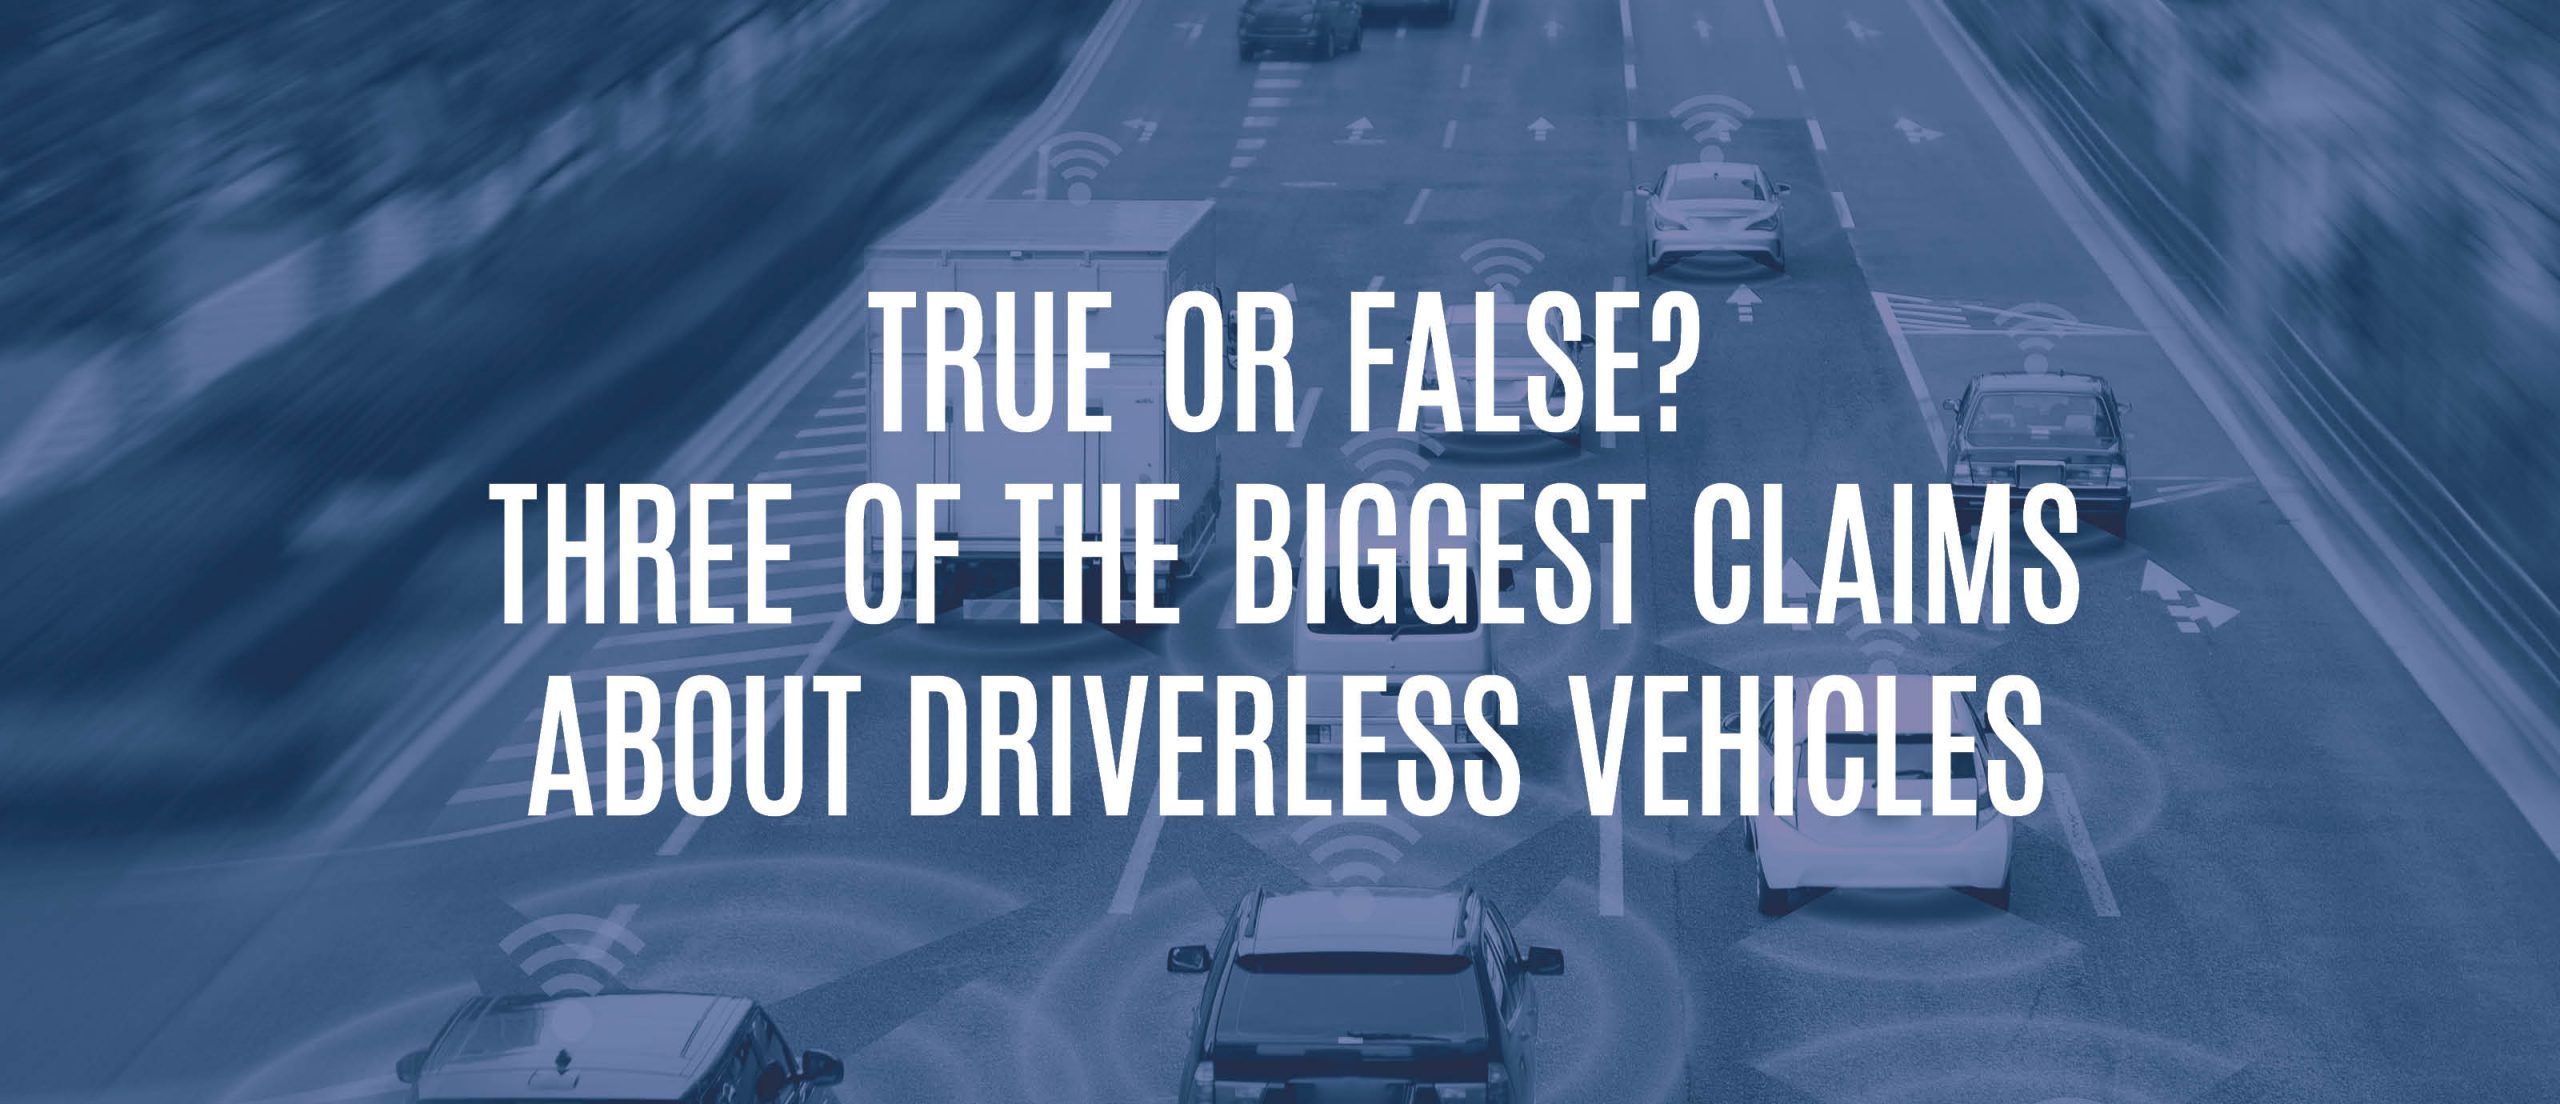 Blog Title - True or false? Three of the biggest claims about driverless vehicles